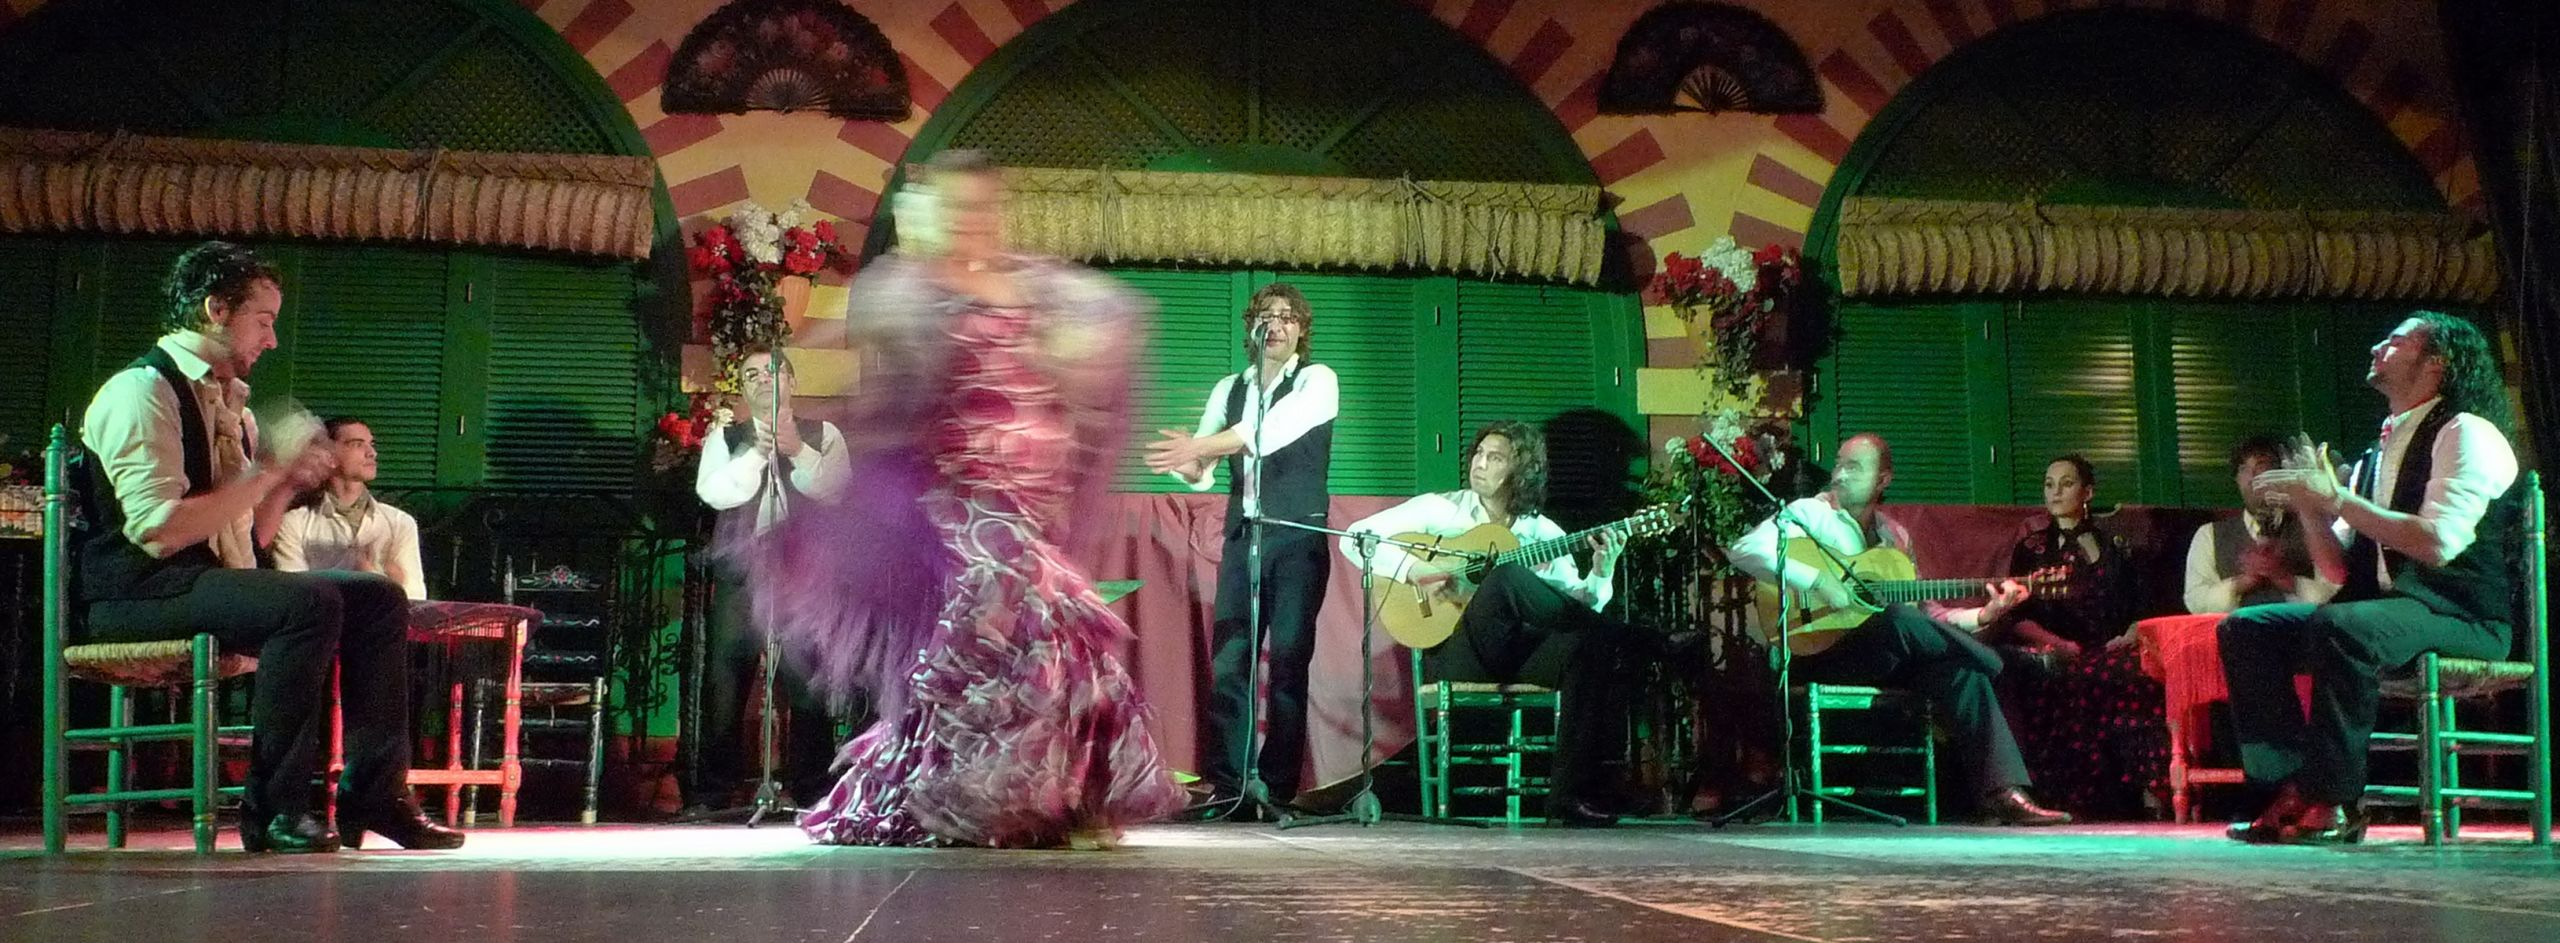 Flamenco in Granada. Courtesy of Veyis Polat under a Creative Commons license.